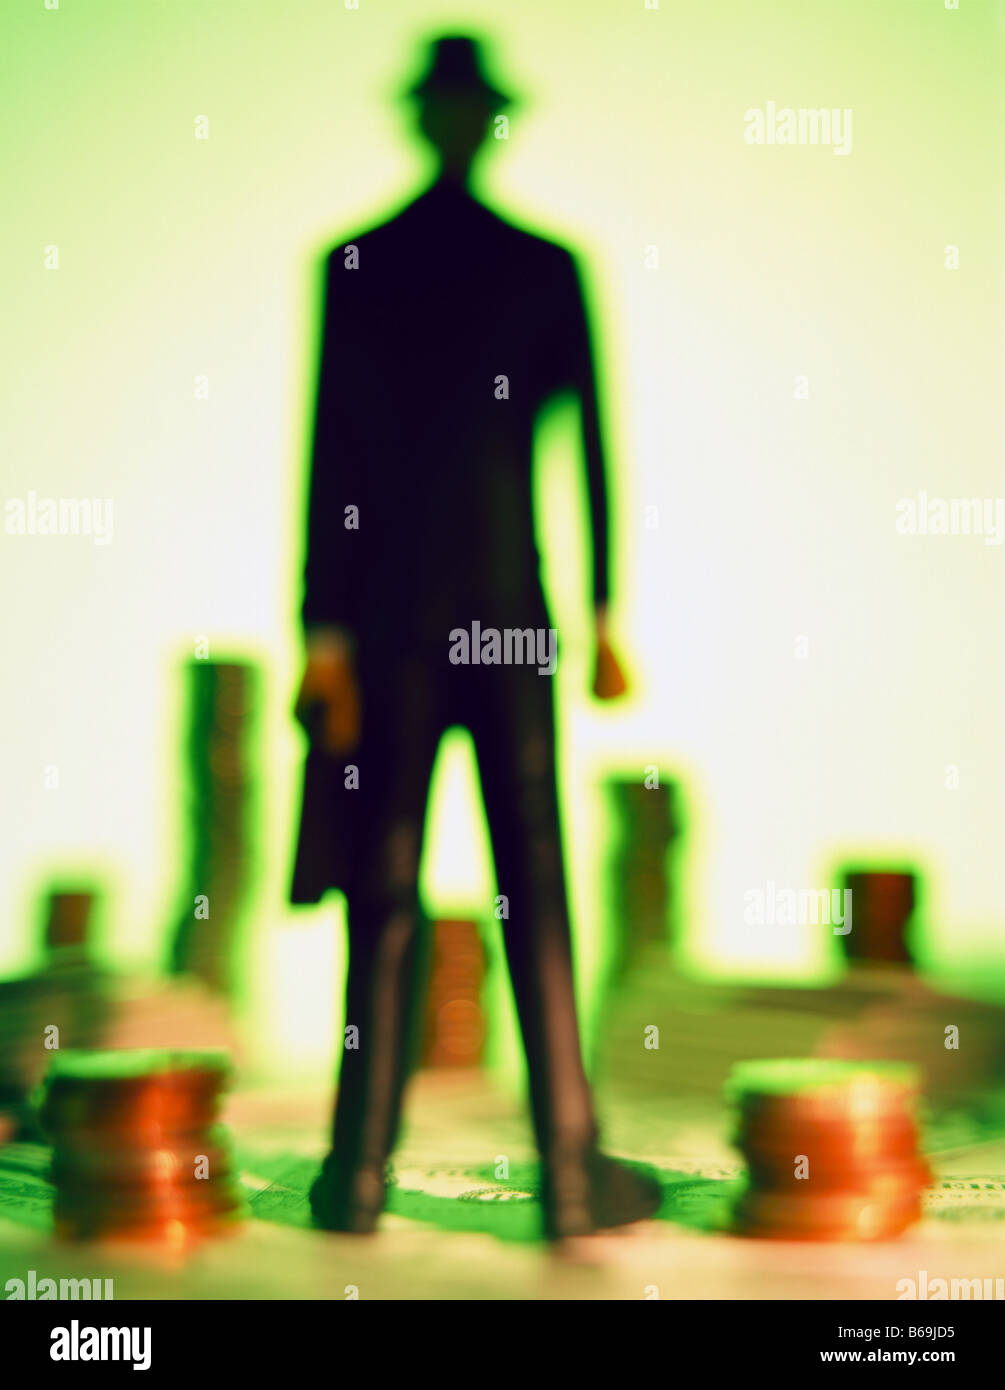 miniature businessman navigating money landscape with coins concept conceptual financial planning goals. ©mak - Stock Image